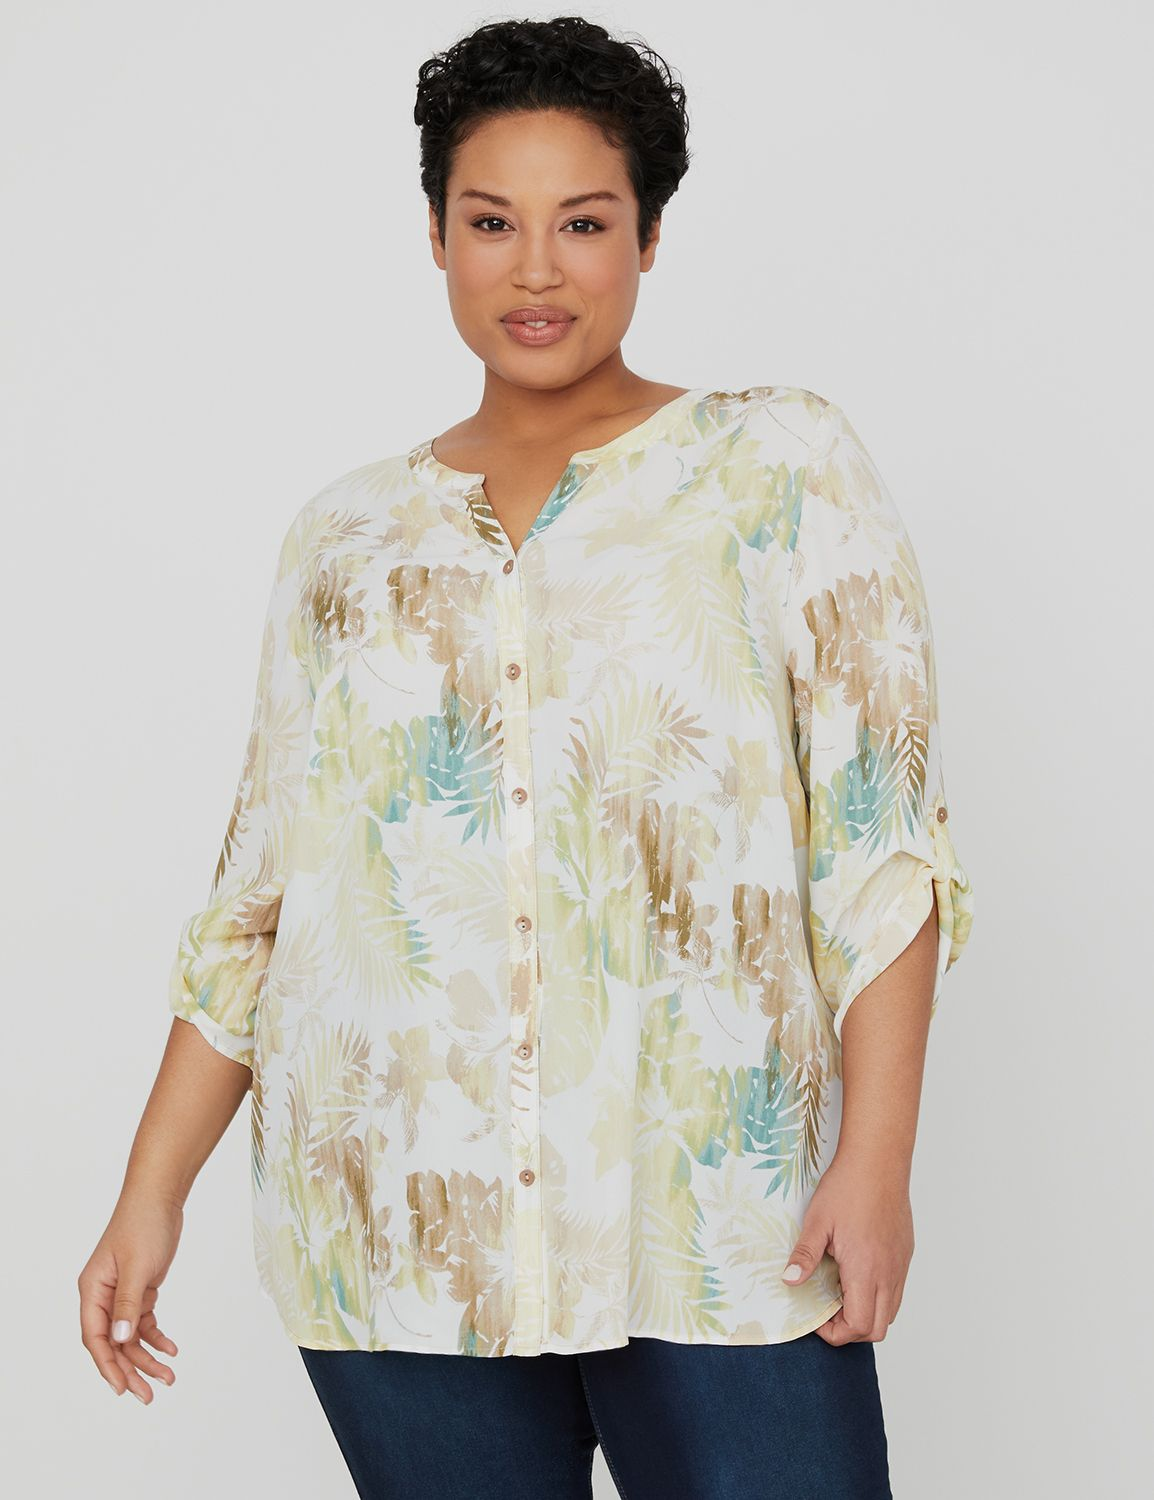 Canyon Shade Buttonfront Top 1090503 Opaque GGT Bttn Front Blous MP-300103552